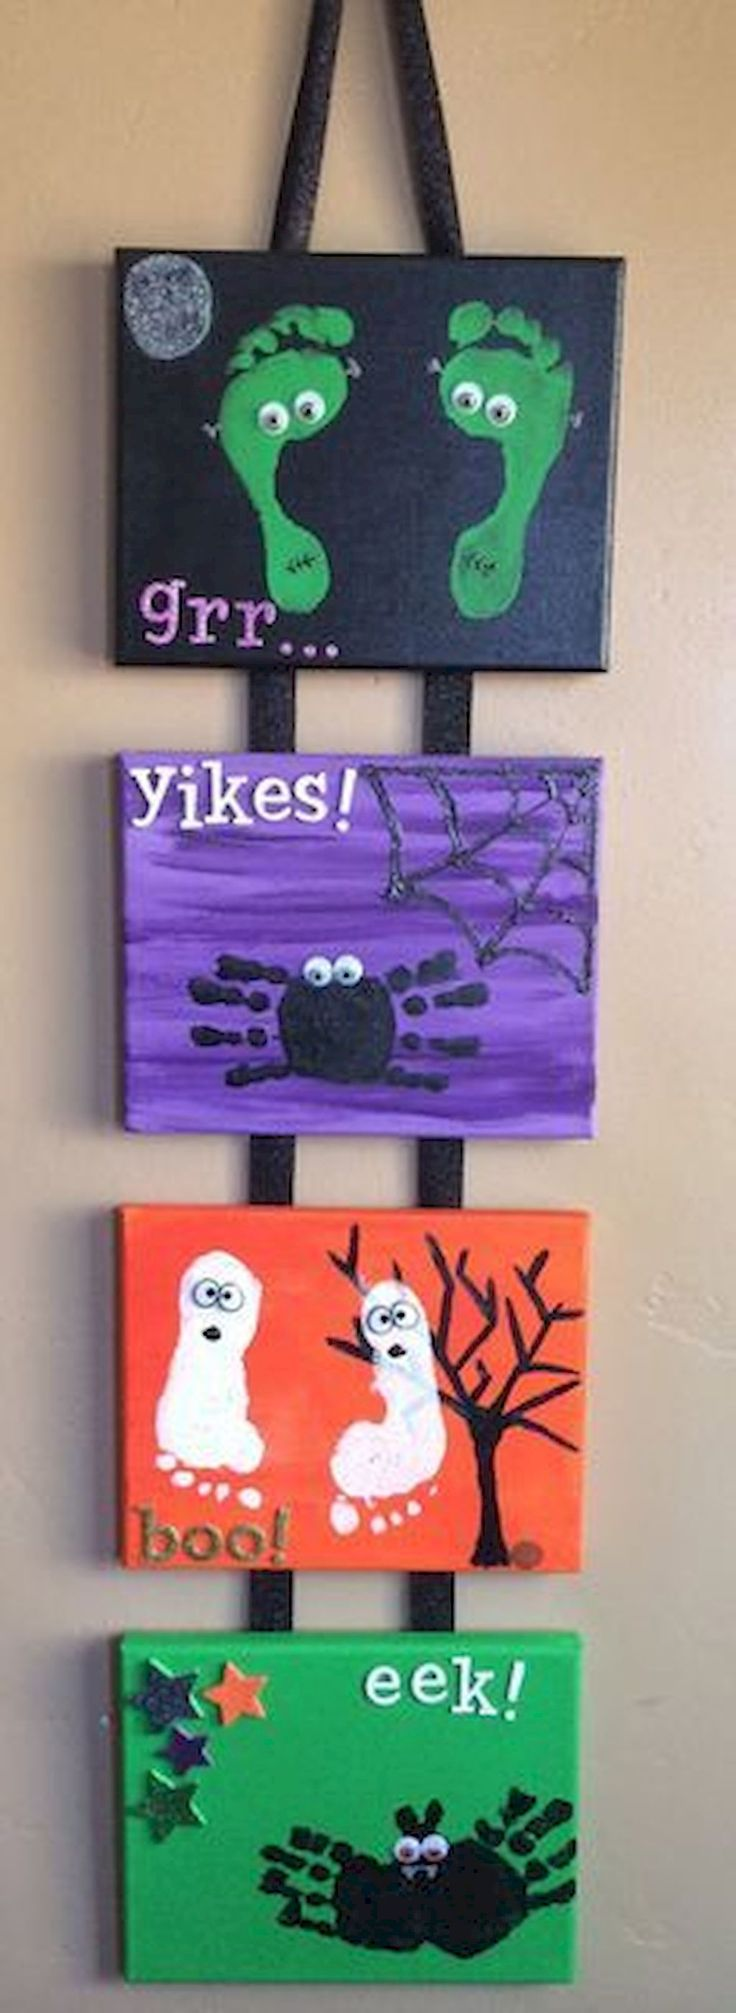 Cool 75 DIY Halloween Home Decor Ideas https://decorapartment.com/75-diy-halloween-home-decor-ideas/